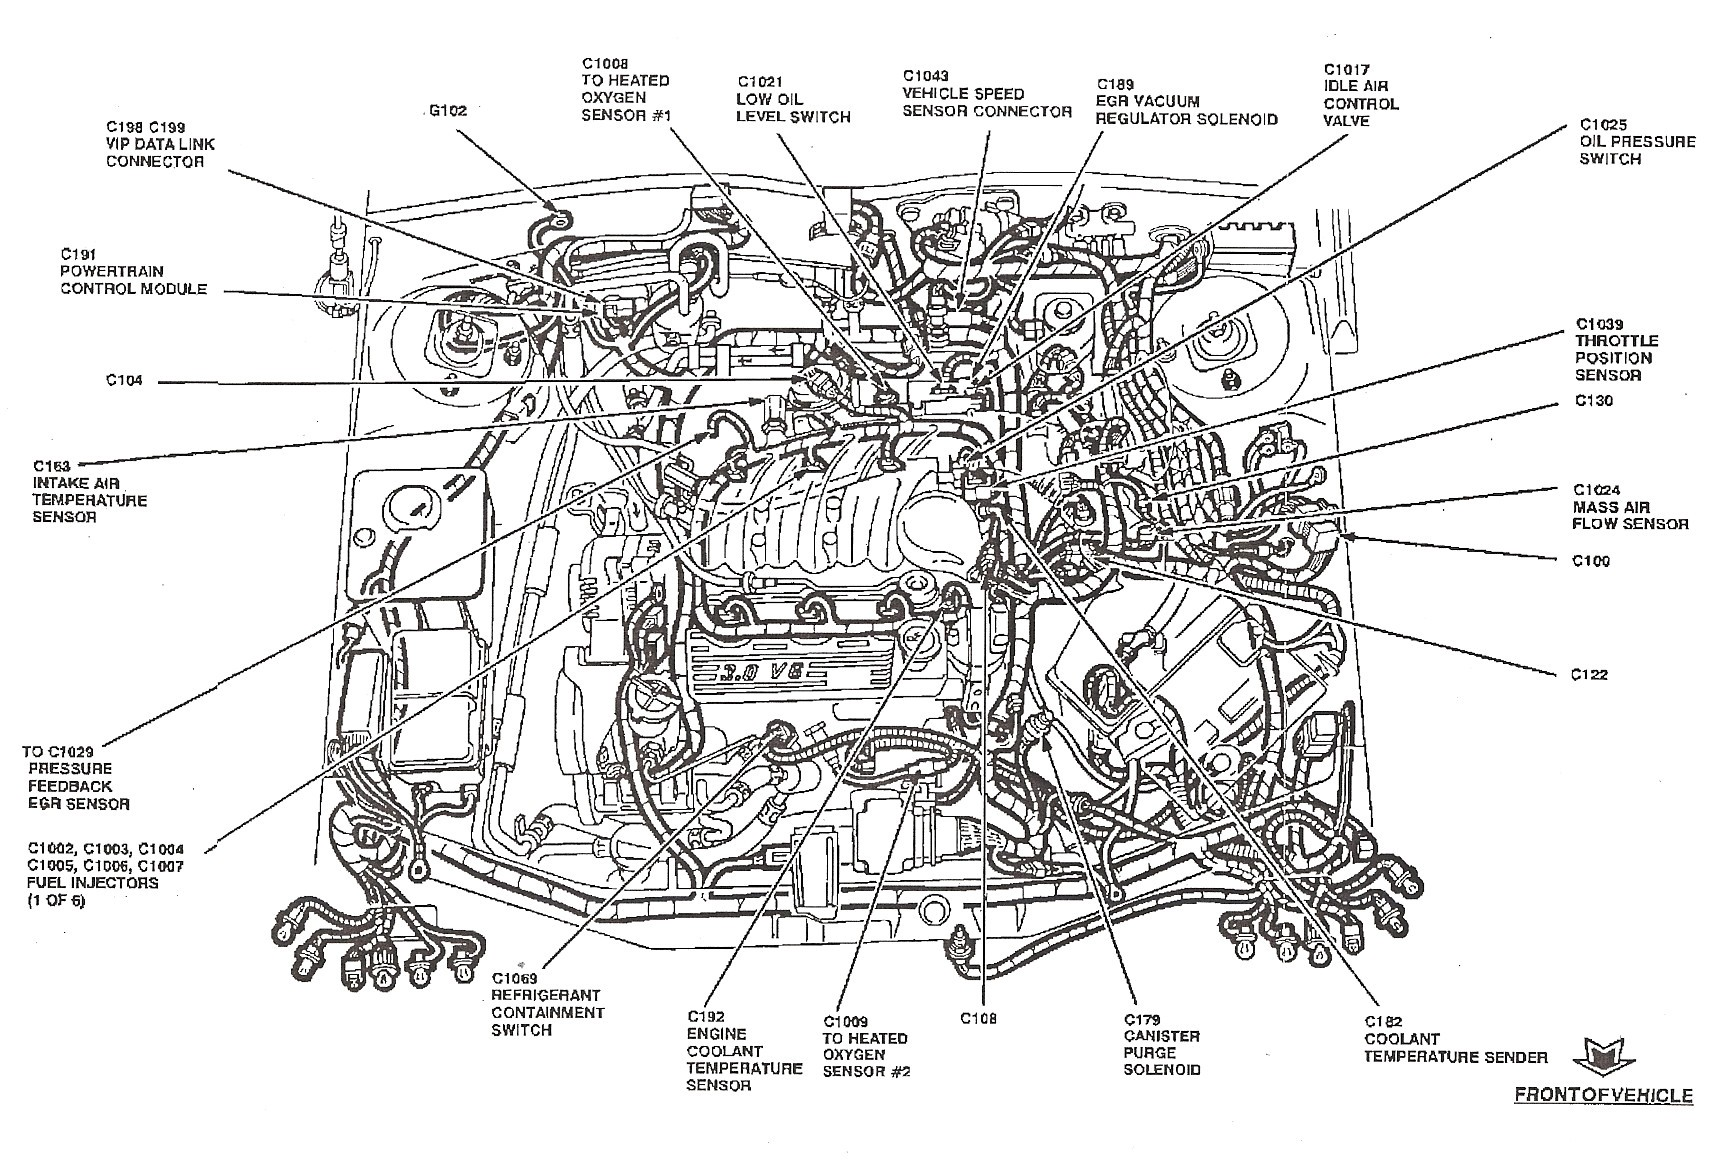 454 Engine Cooling System Diagram